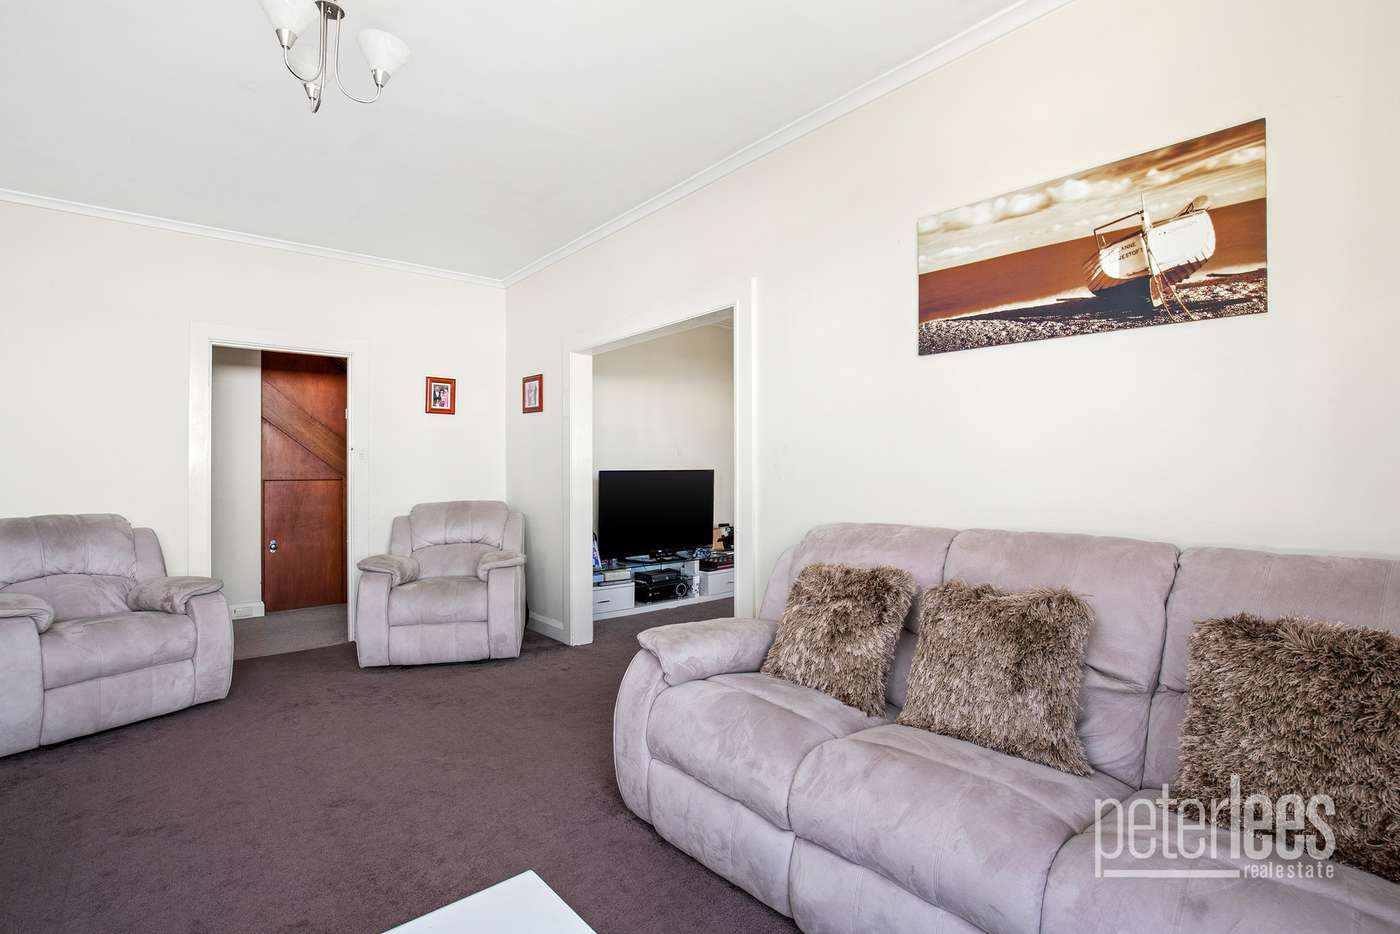 Fifth view of Homely house listing, 10A Erina Street, East Launceston TAS 7250